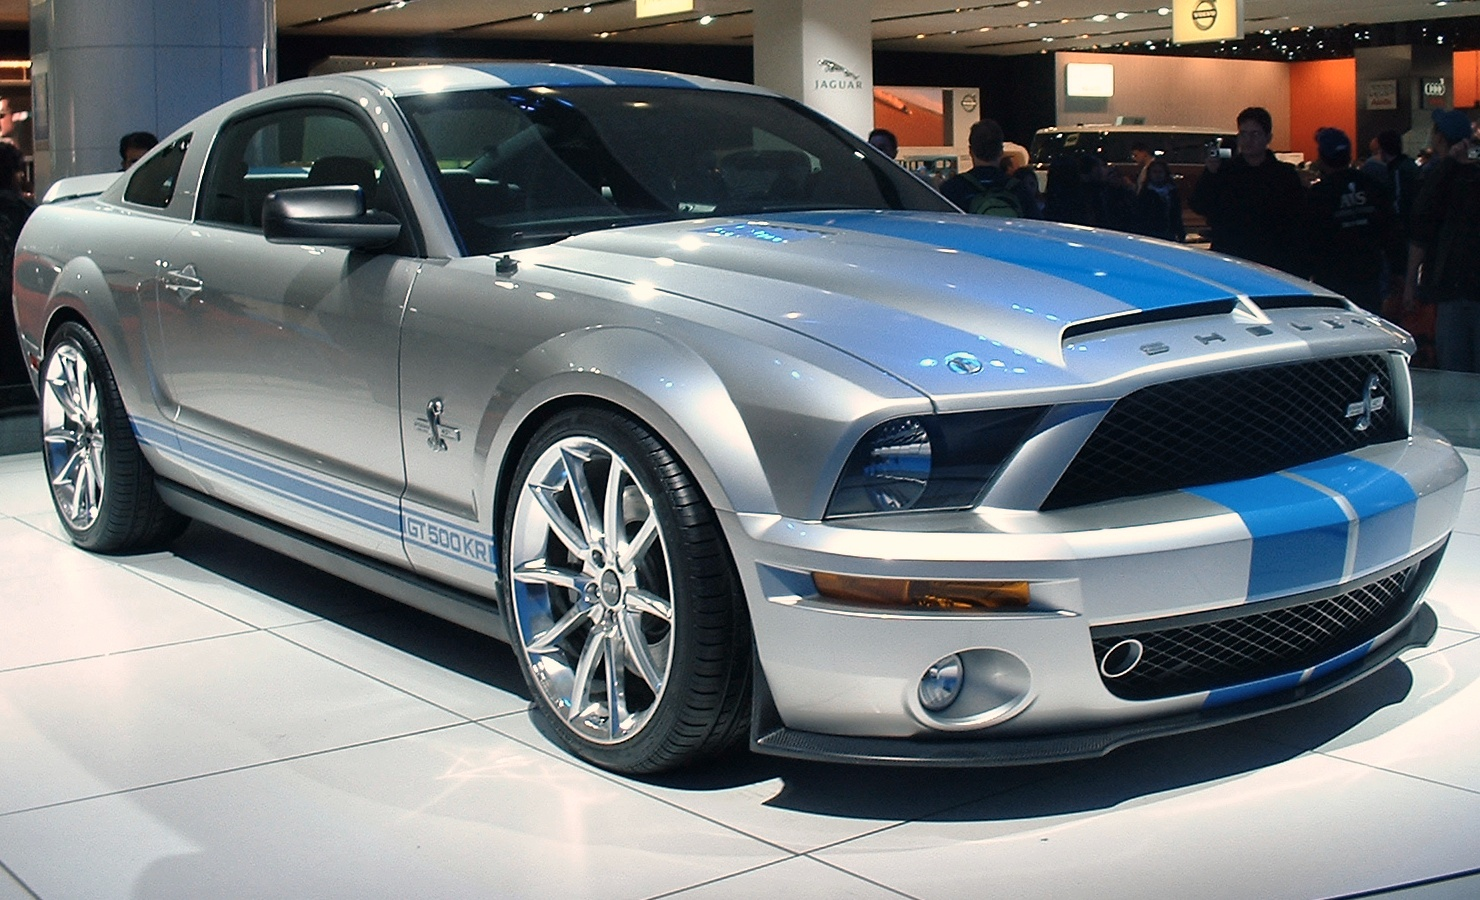 Ford Shelby GT500 #11